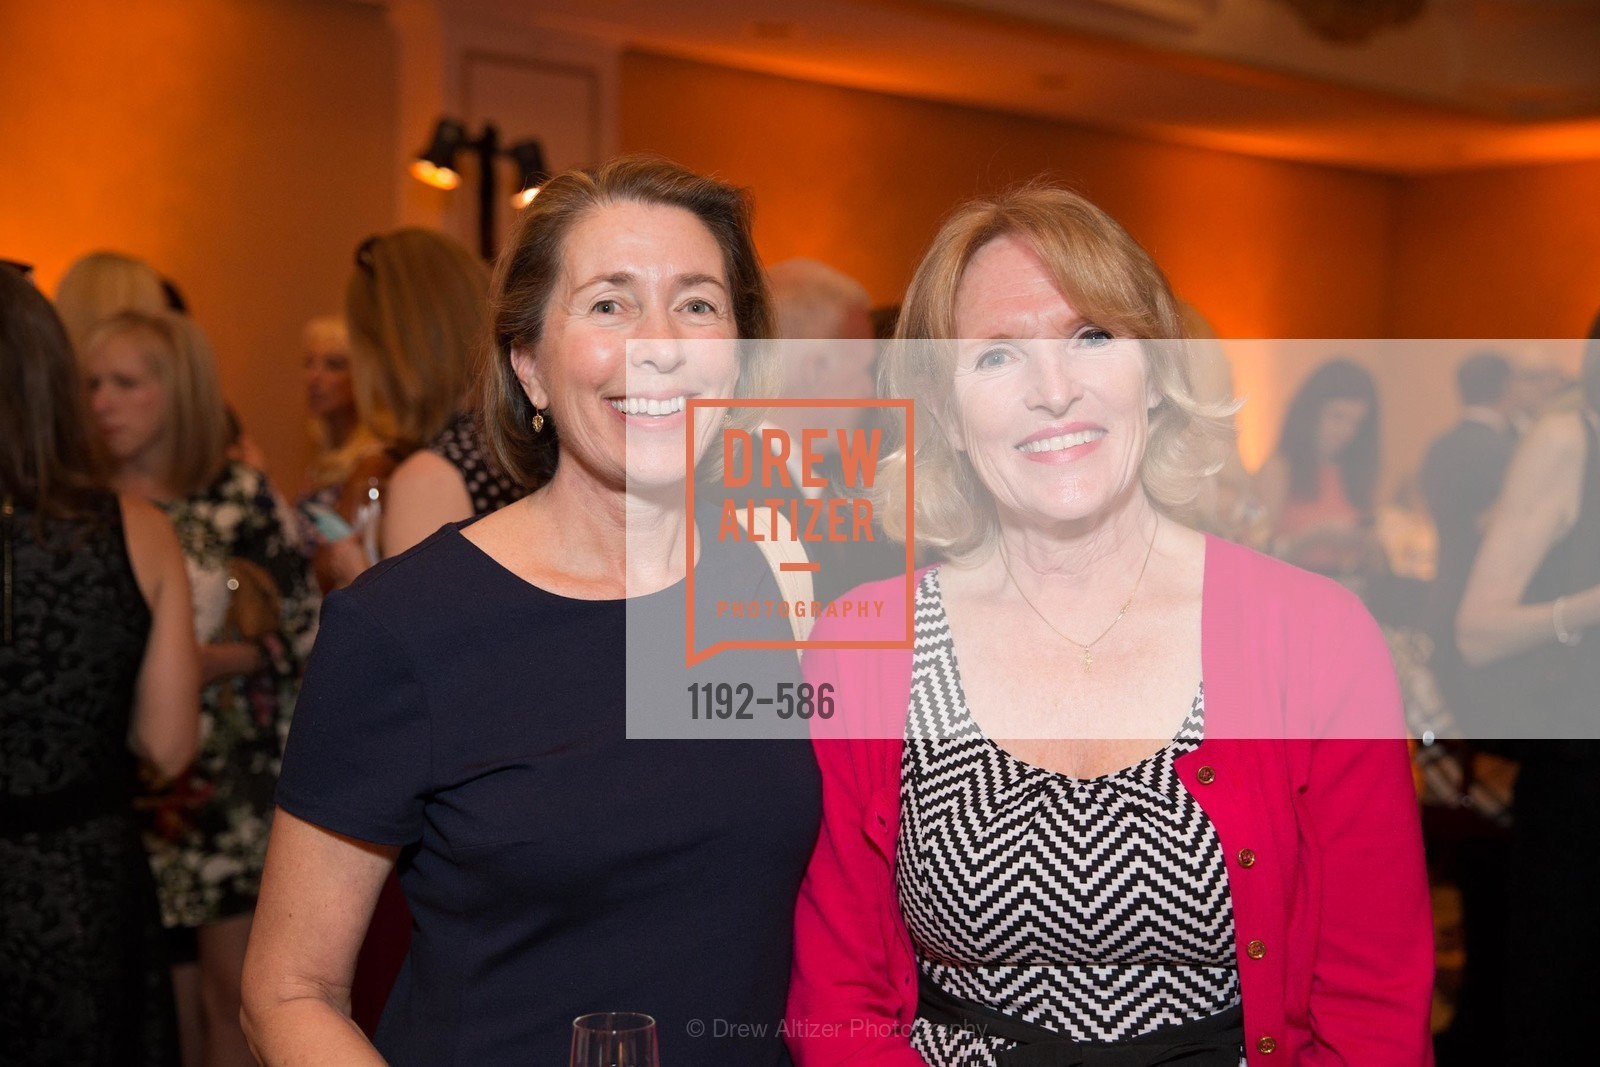 Barbara Dukas, Sue Farley, 2014 Bay Area ARTHRITIS AUXILLIARY Benefit & Fashion Show, US, October 1st, 2014,Drew Altizer, Drew Altizer Photography, full-service agency, private events, San Francisco photographer, photographer california